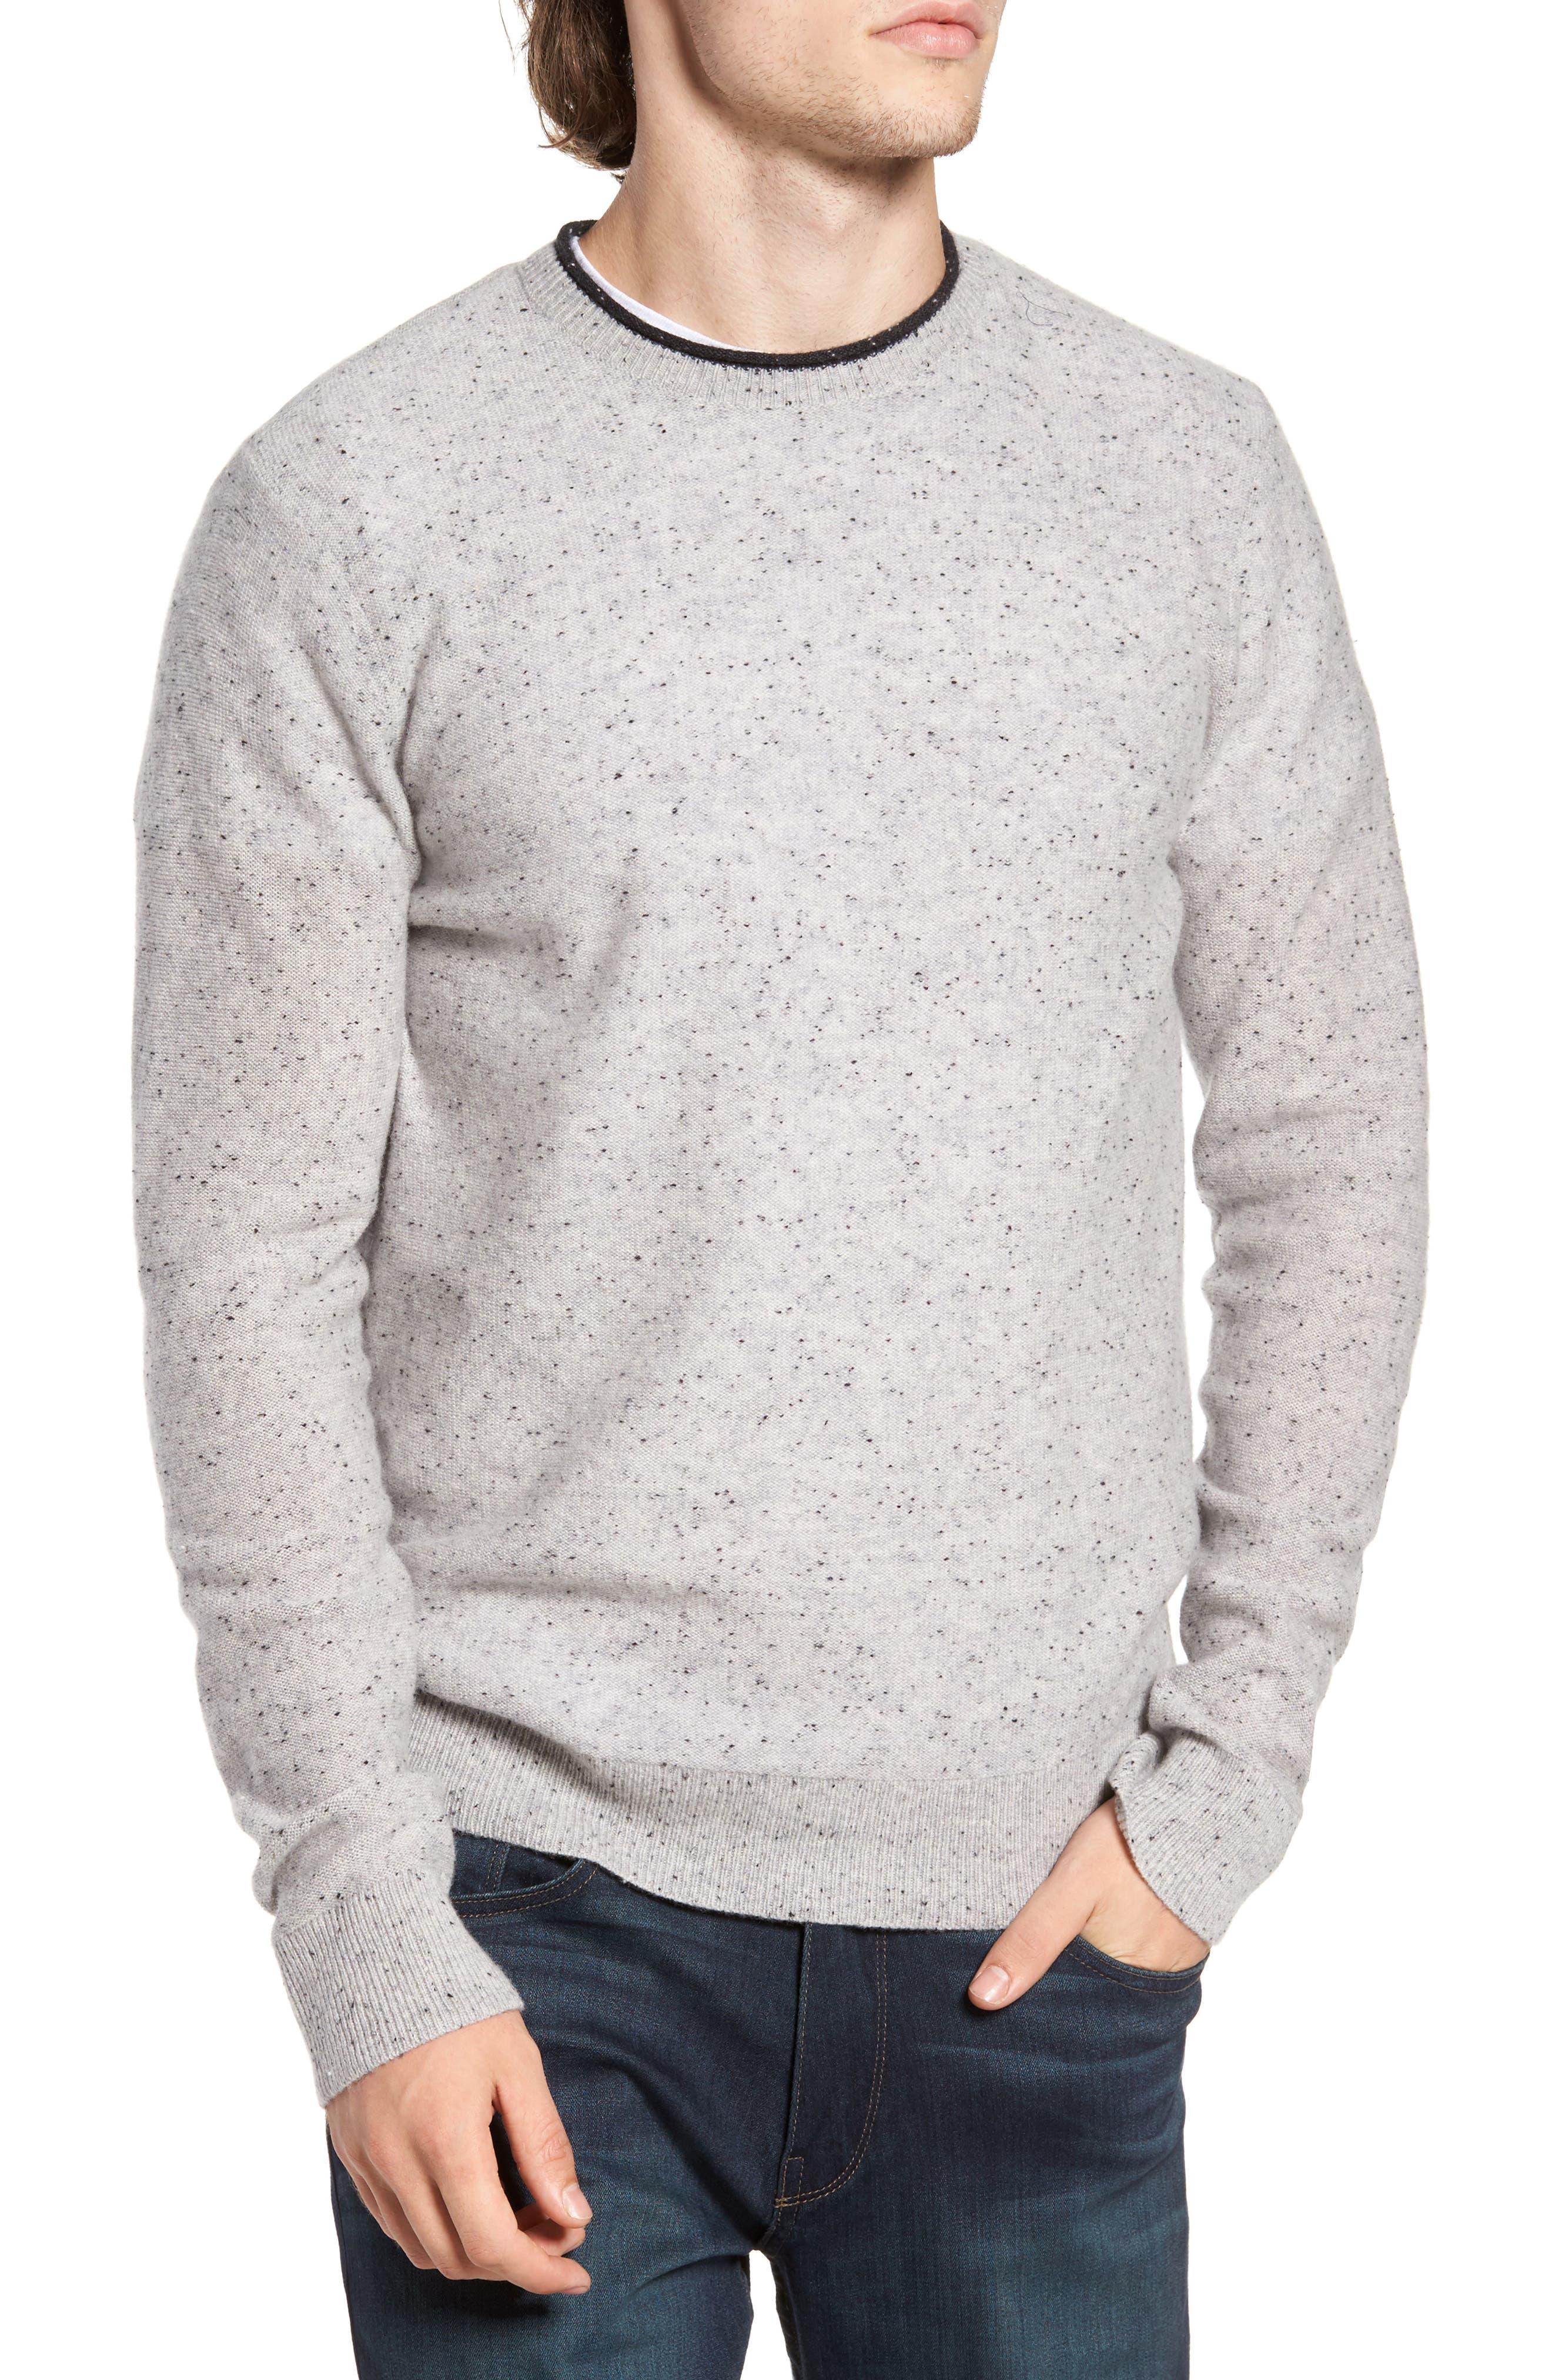 Nep Wool & Cashmere Sweater,                             Main thumbnail 1, color,                             020